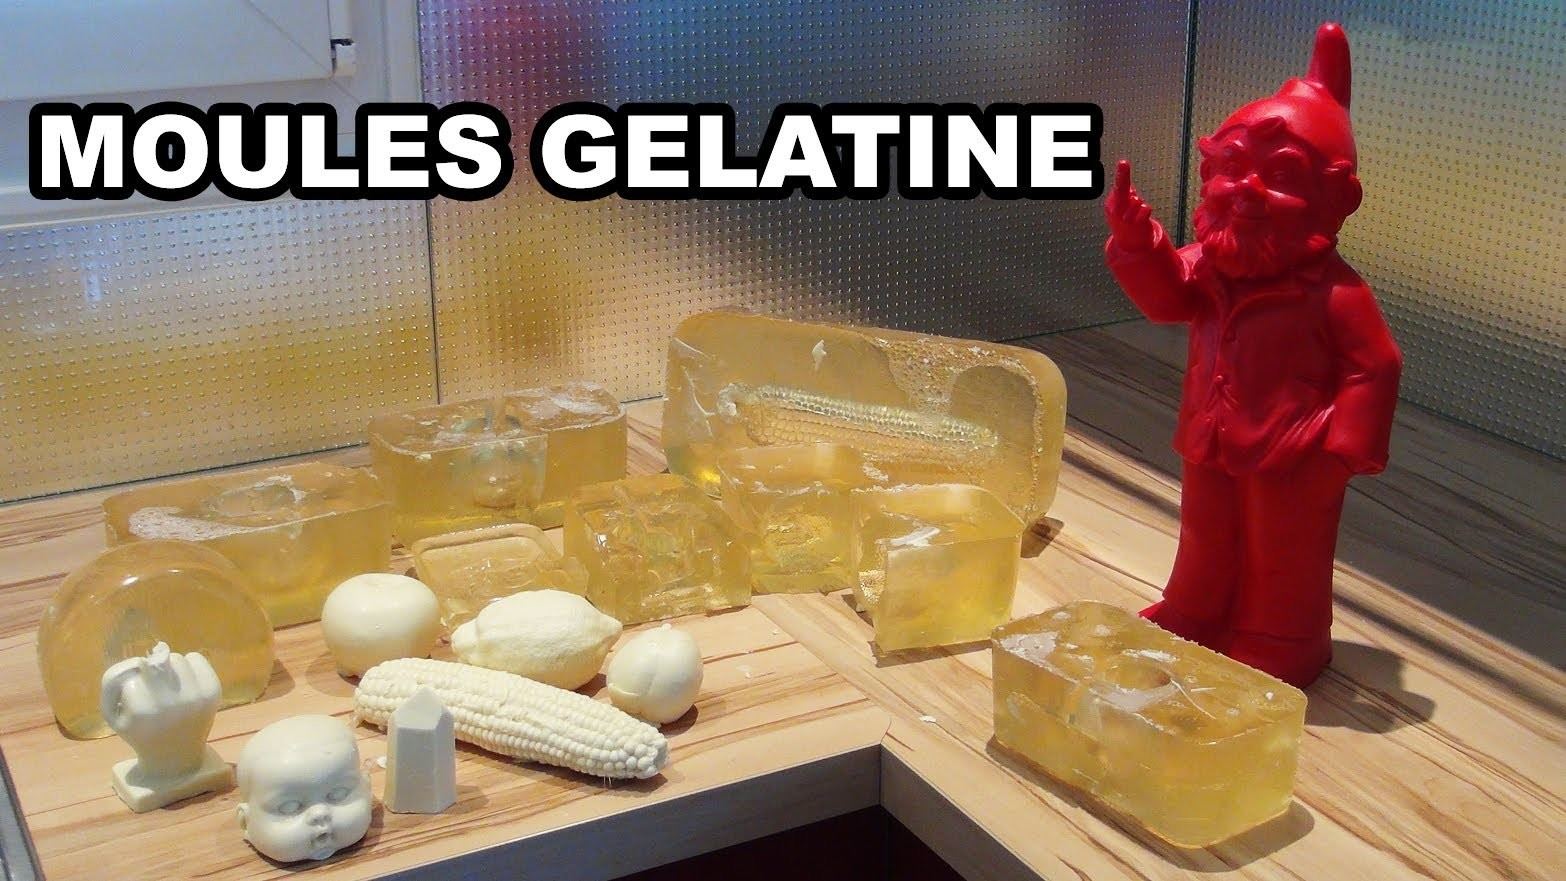 Moule gélatine - How to do gelatine mold - pâtisserie - cuisine - Albarock